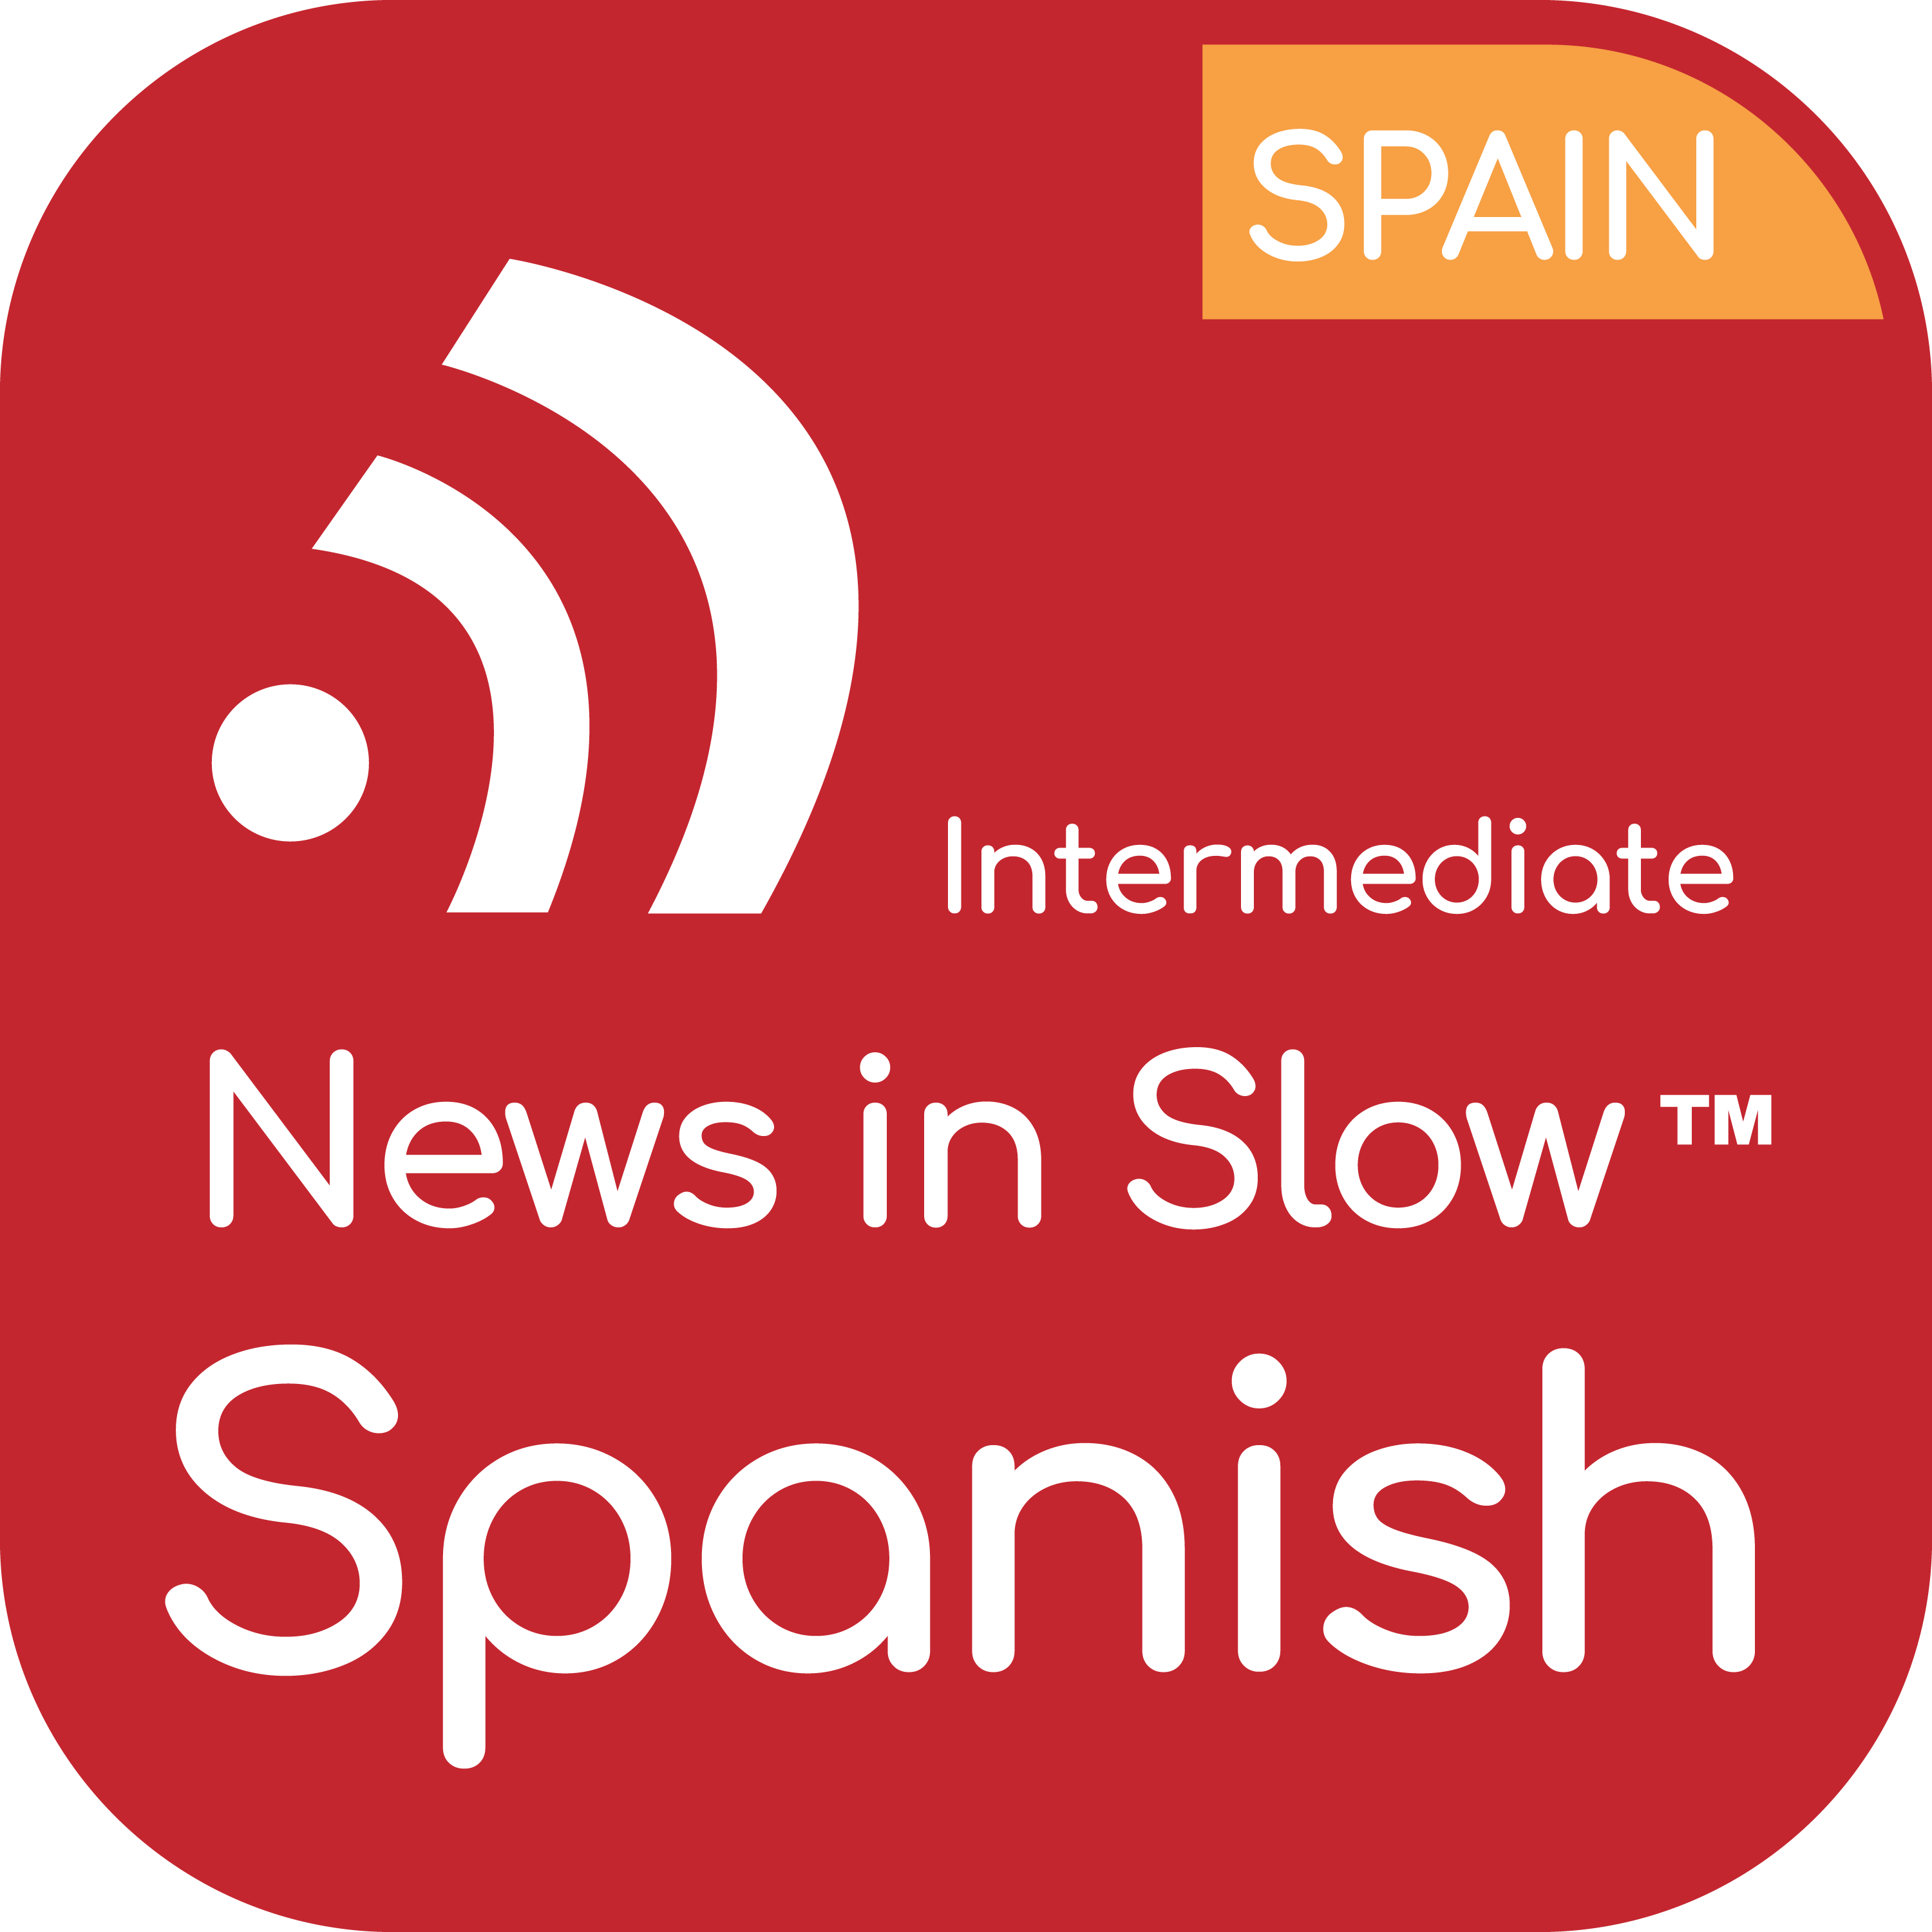 News in Slow Spanish - #624 - Intermediate Spanish Weekly Program